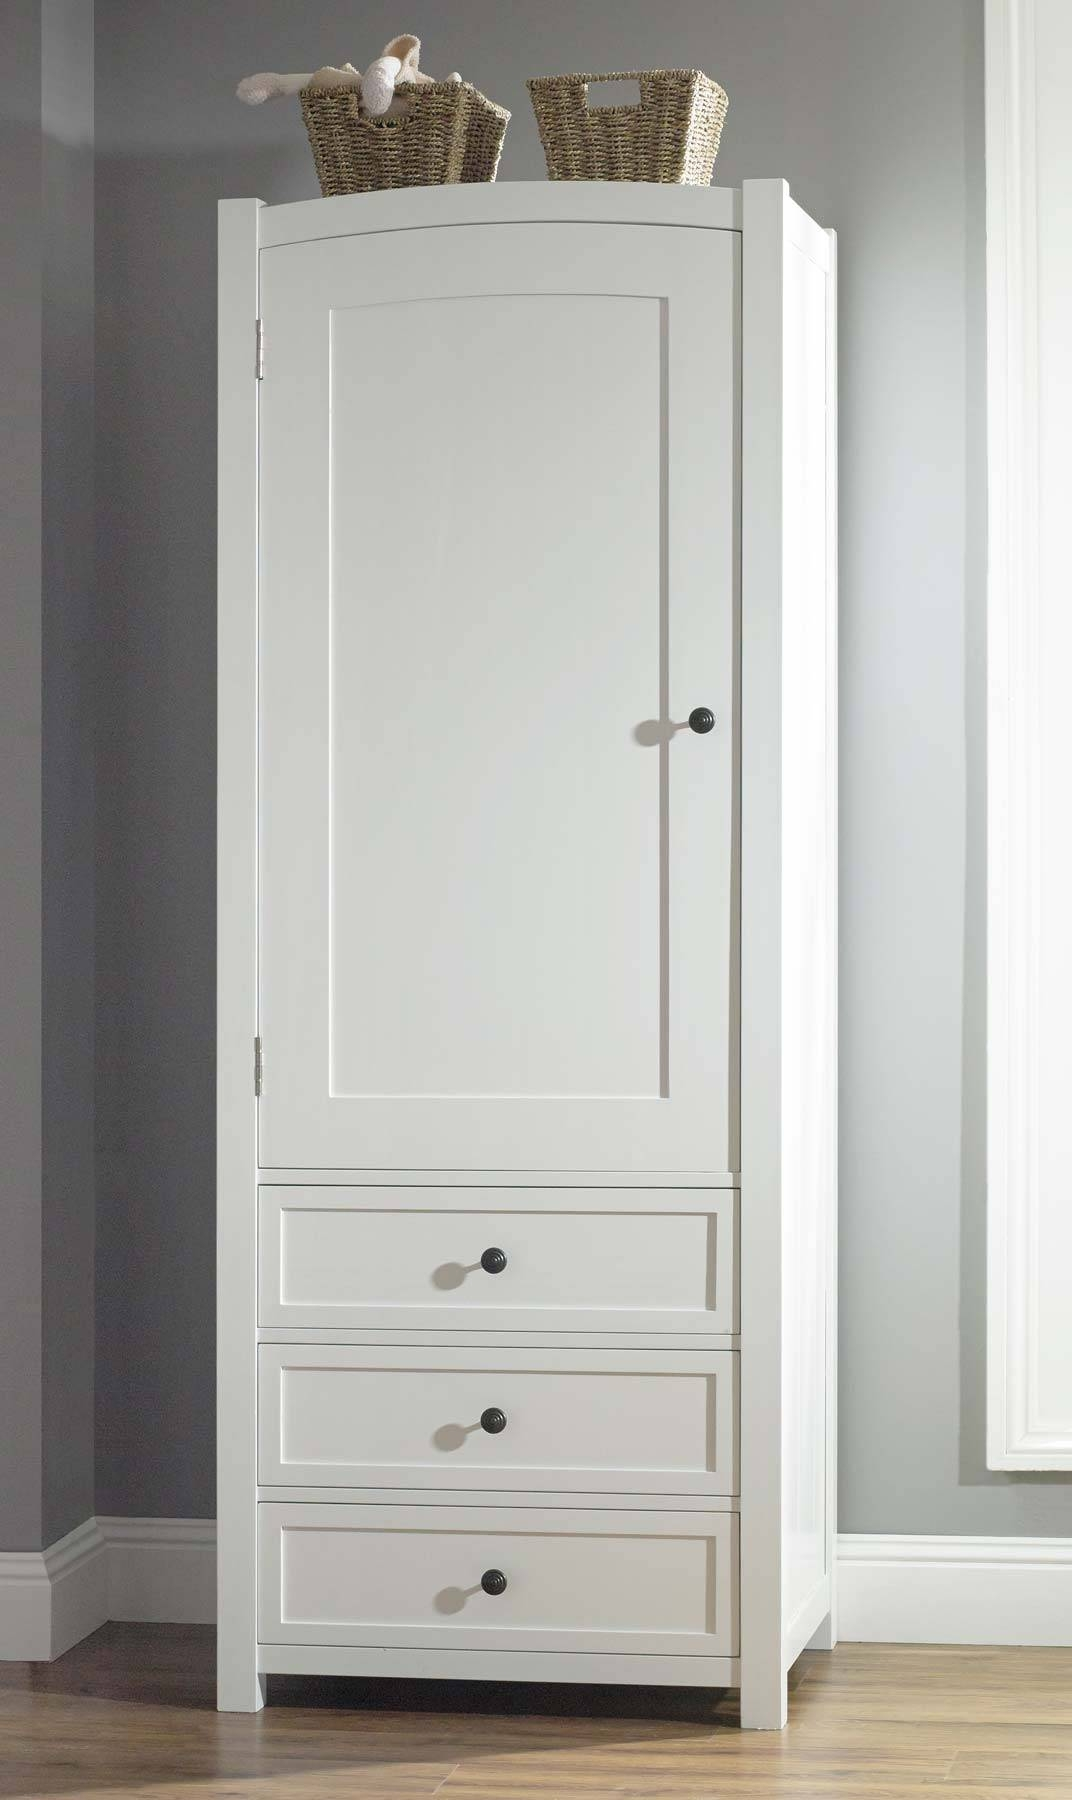 Wardrobe : 39 Formidable White Wooden Wardrobe With Drawers Photo regarding Cheap Wardrobes And Chest Of Drawers (Image 15 of 15)